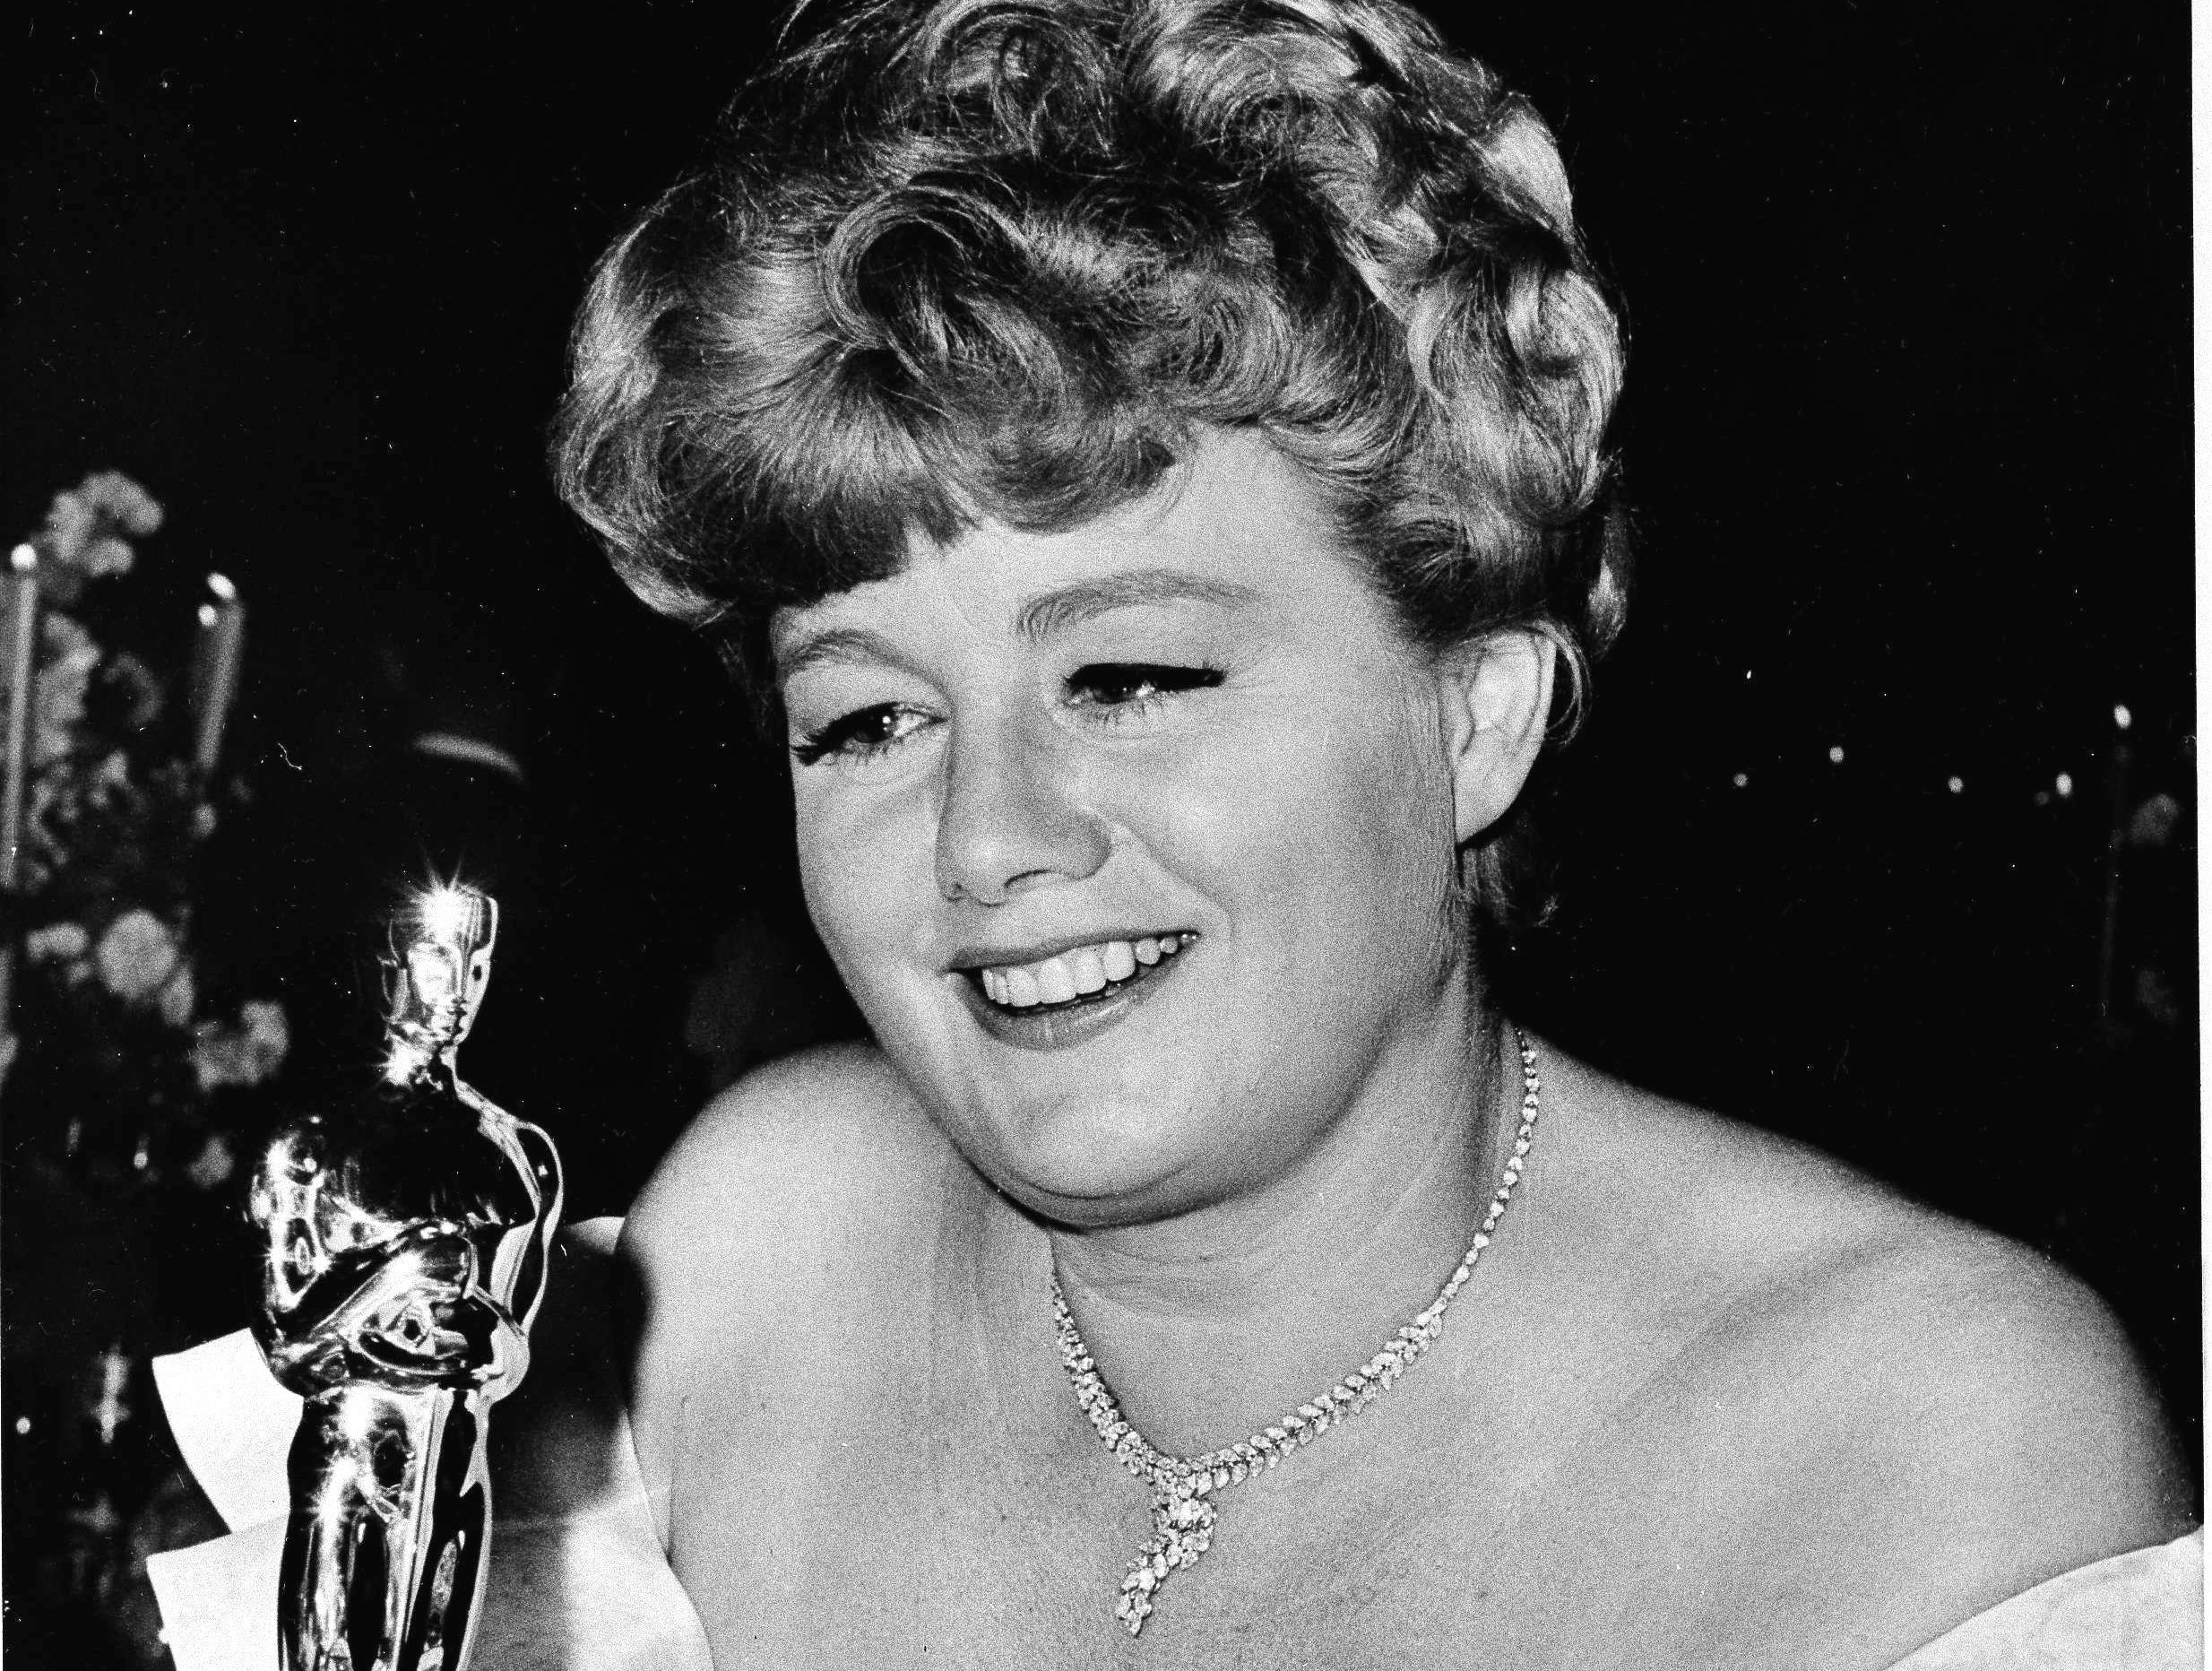 """U.S. actress Shelley Winters, whose role in """"A Patch of Blue"""" won her the 'Best Supporting Actress' Oscar at last night's Academy Awards, admires the Golden Statuette at an Academy party, Santa Monica, CA, April. 19, 1966."""